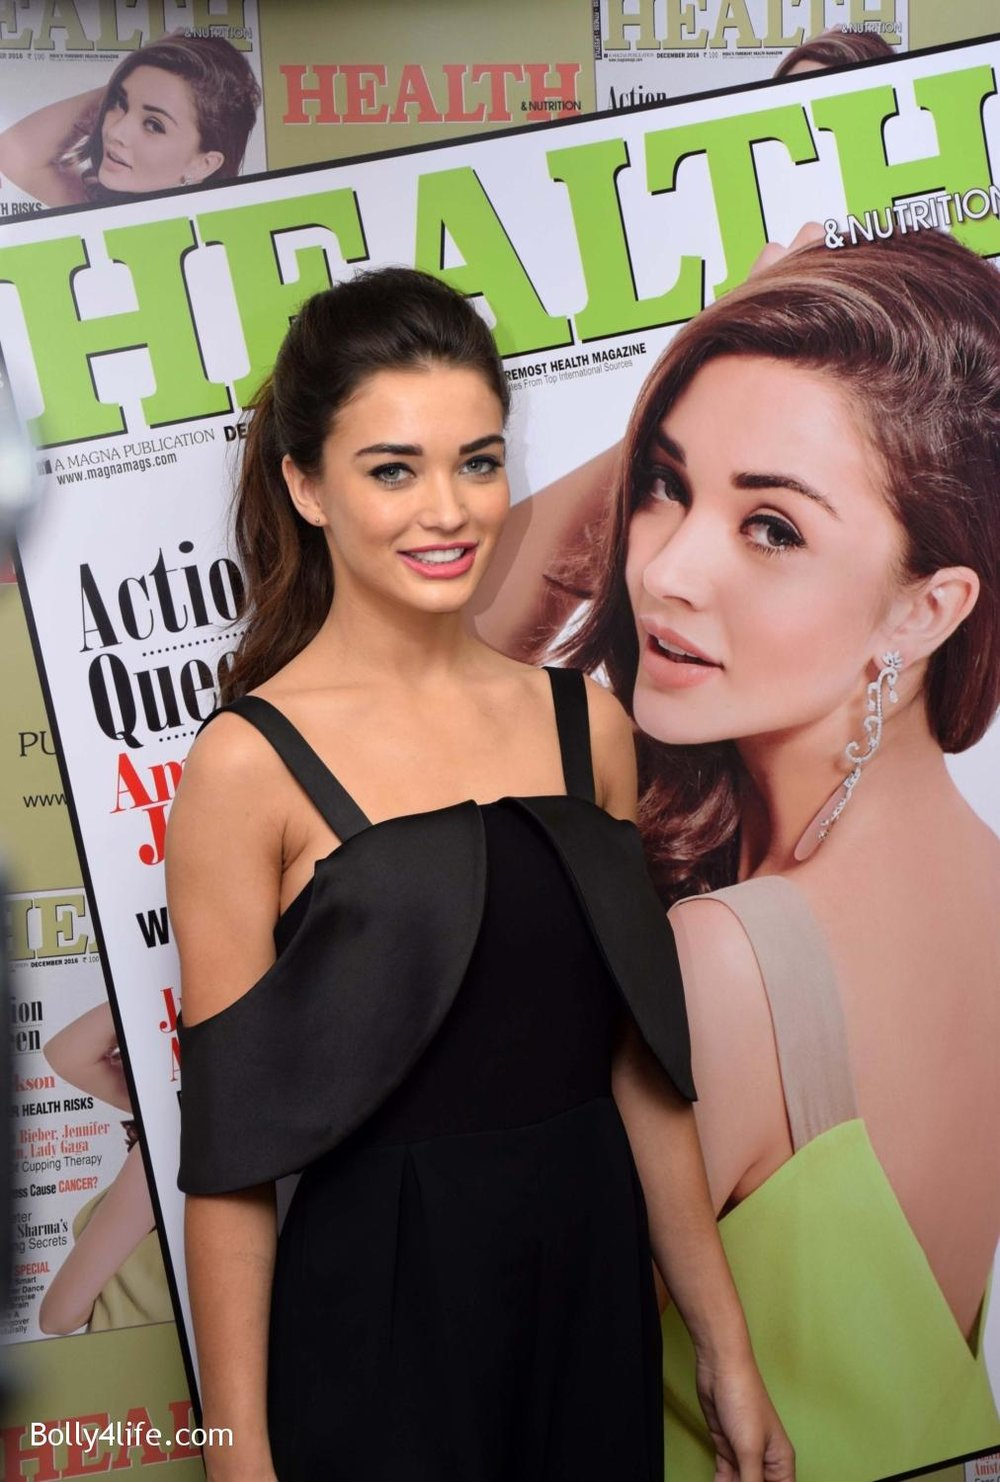 Amy-Jackson-during-the-Health-Nutrition-magazine-cover-unveiling-of-the-December-2016-issue-10.jpg